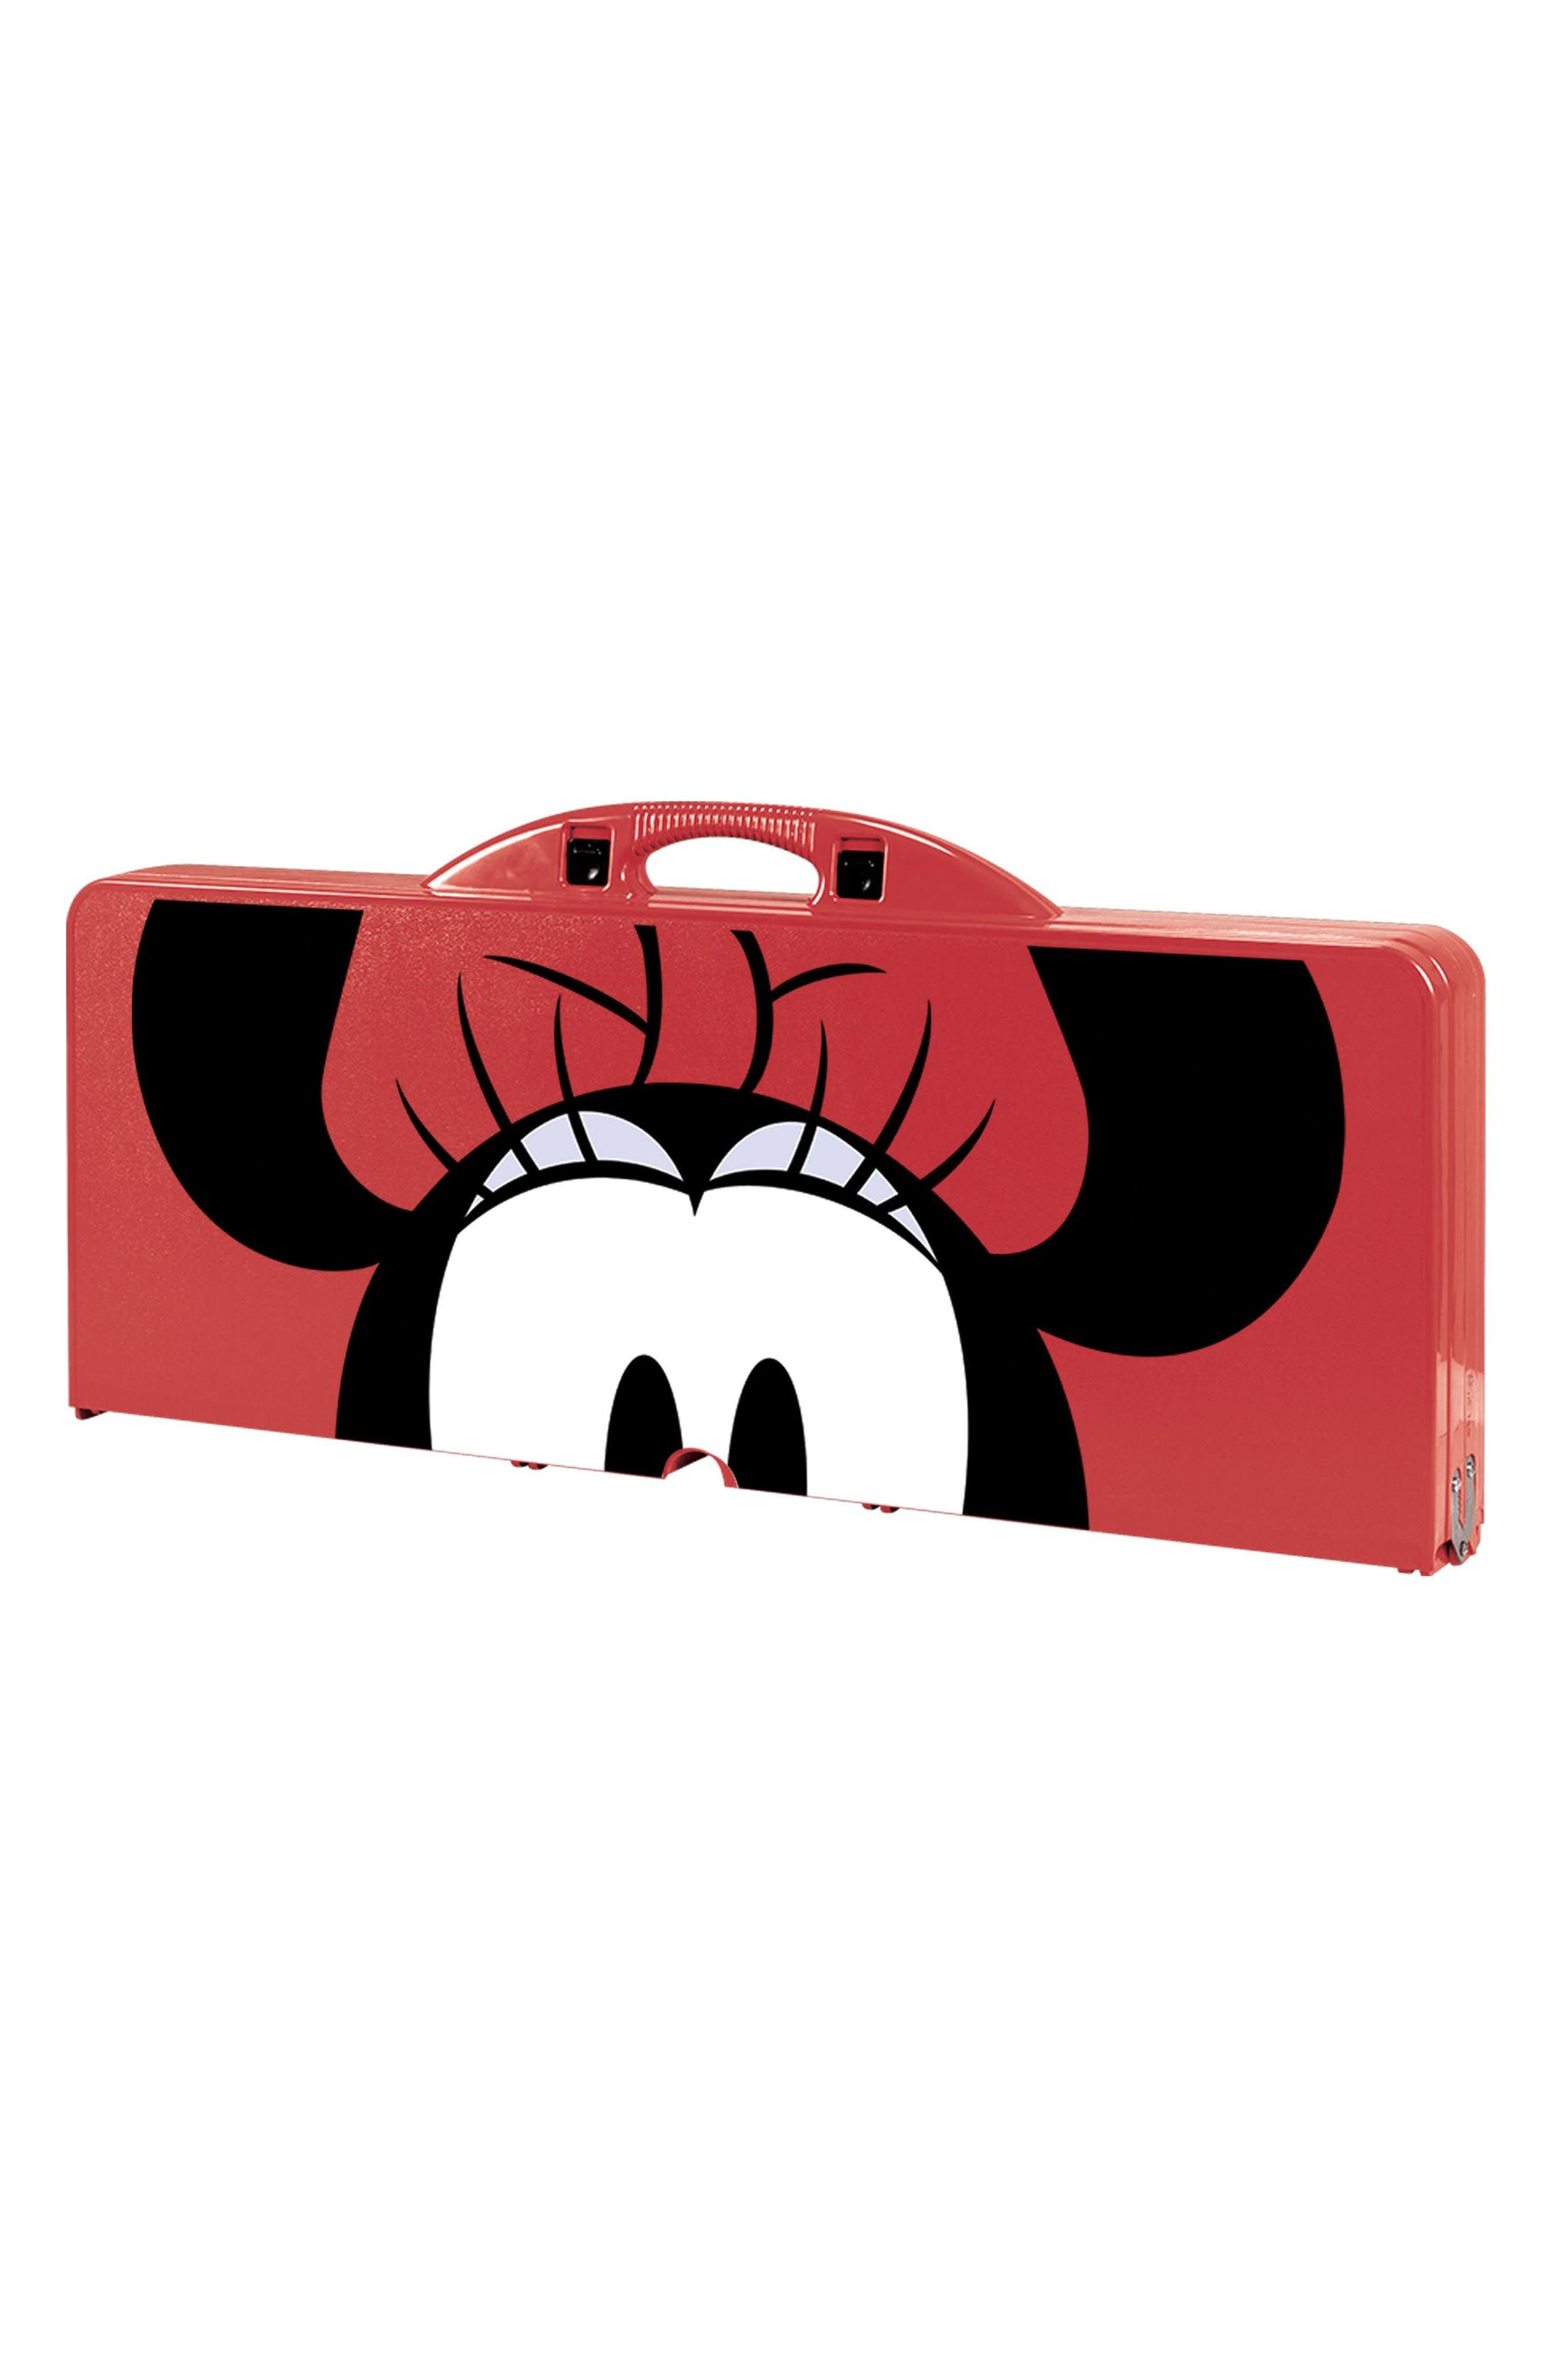 Disney<sup>®</sup> Mickey Mouse Portable Folding Table,                             Alternate thumbnail 2, color,                             Red